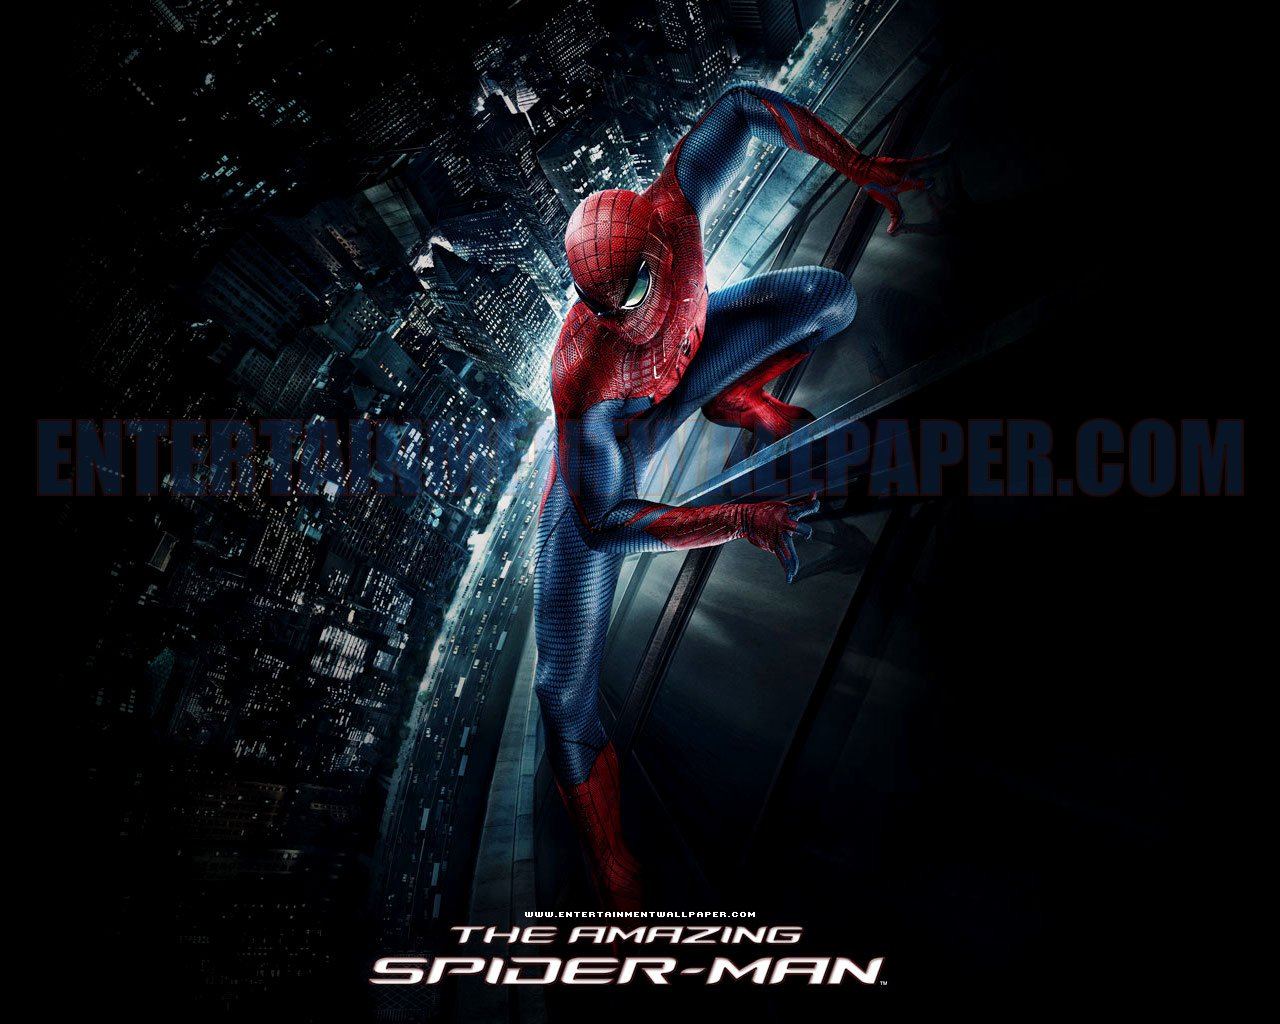 the amazing spider man movie the amazing spider man wallpapers